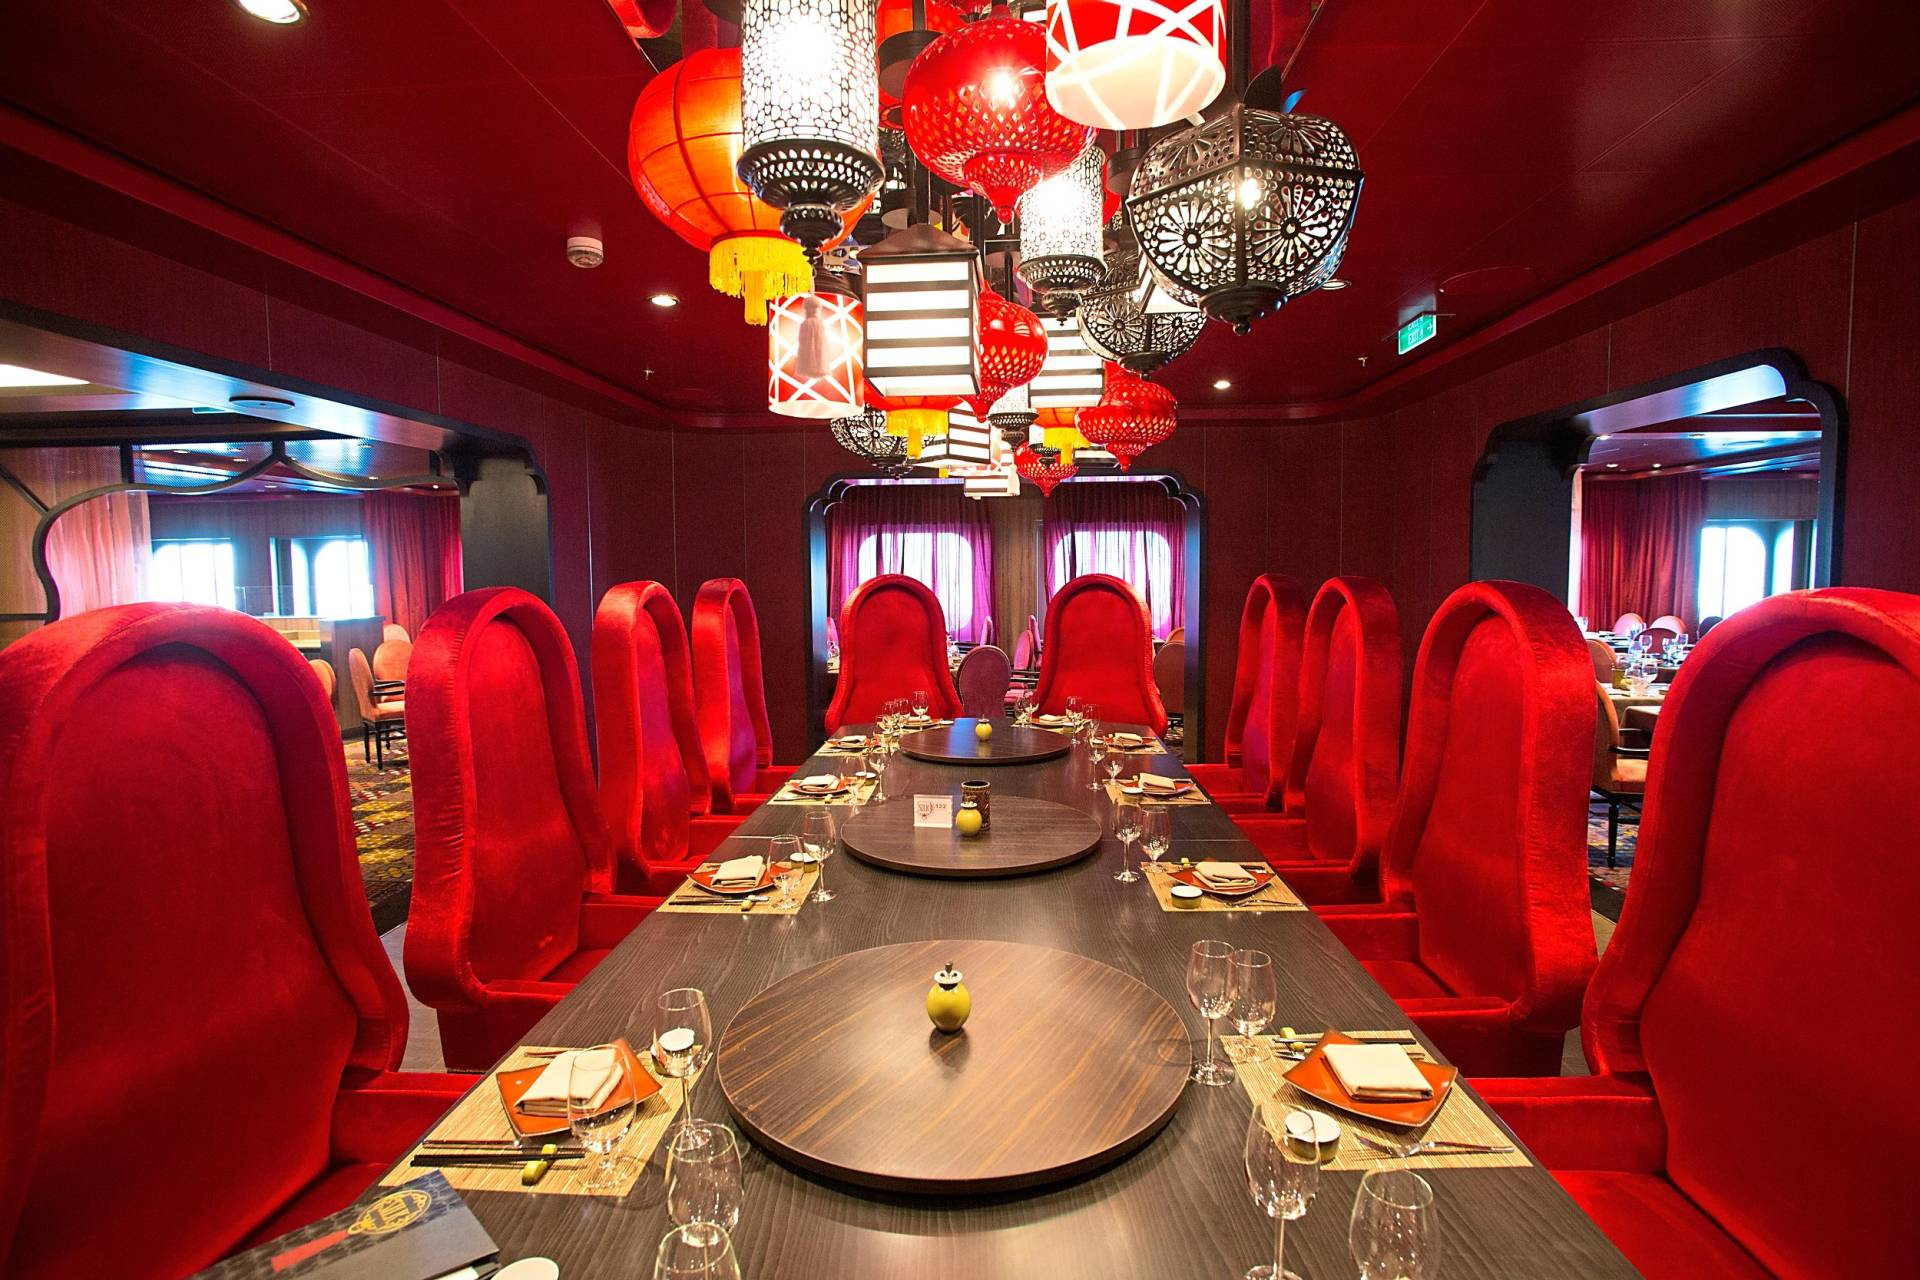 Silk Restaurant offers Asian cuisine, including Chinese, Japanese, Thai, Vietnamese and Indian meals, in an opulent setting. Photo: Royal Caribbean International